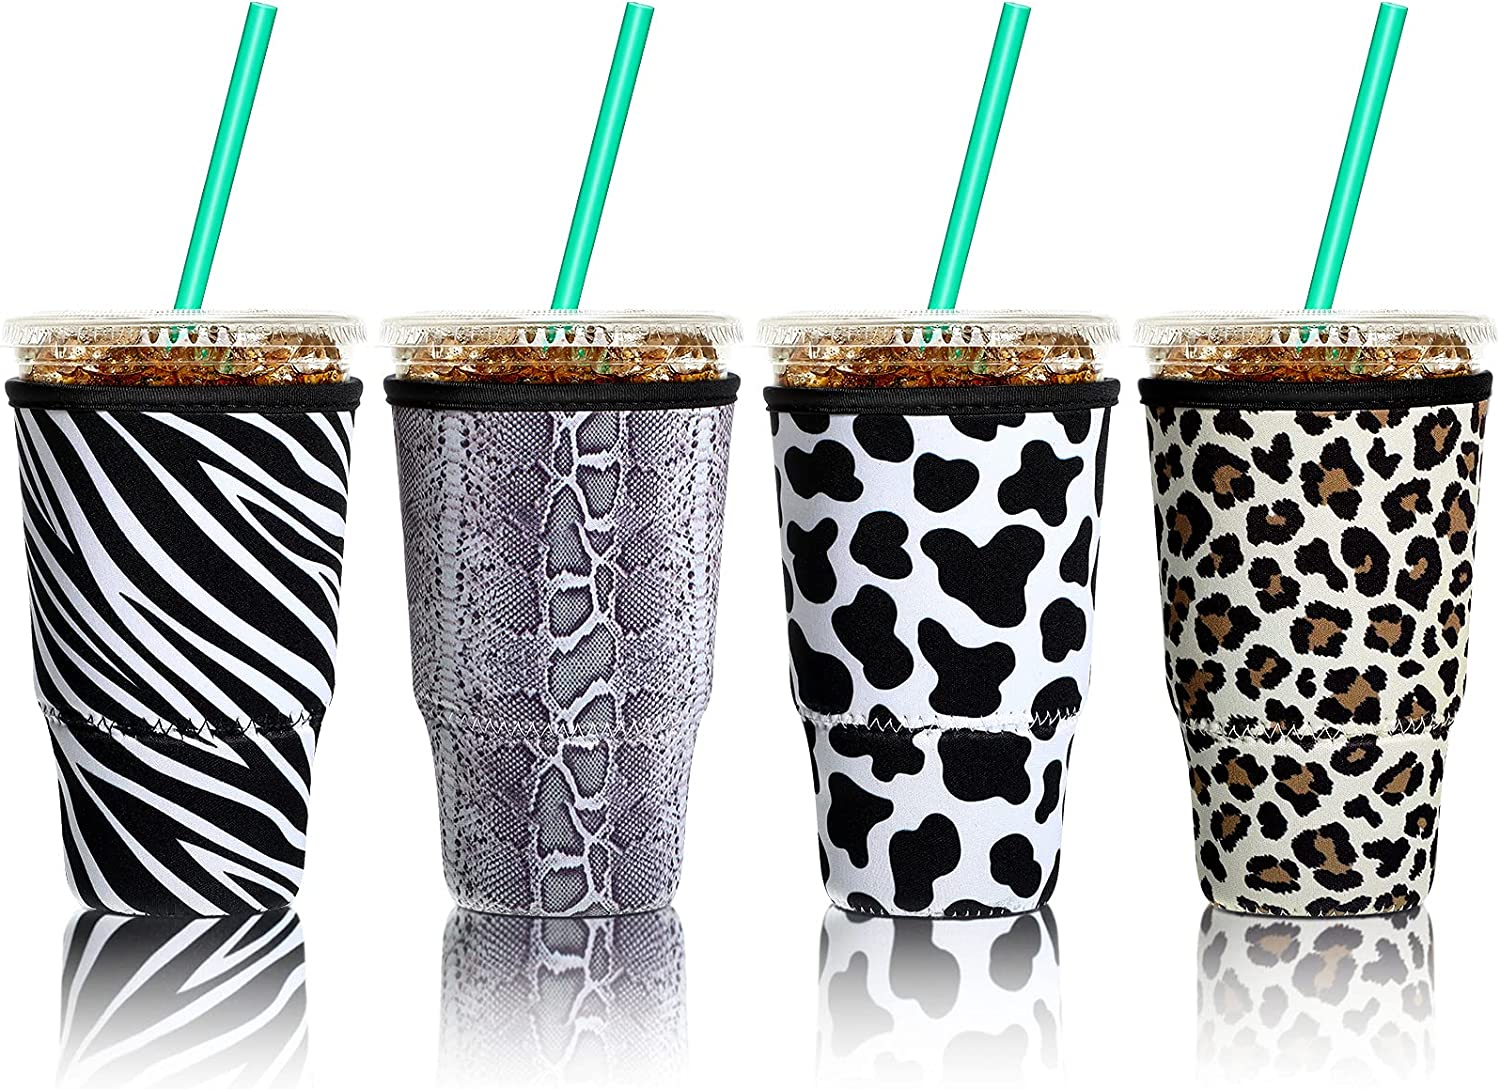 4 Pieces Reusable Coffee Sleeve Cup Insulator for Cold Drinks Beverages and Neoprene Cup Holder for Most Coffee, Drinks Cup, 30-32 OZ Large (Animal Stripes)